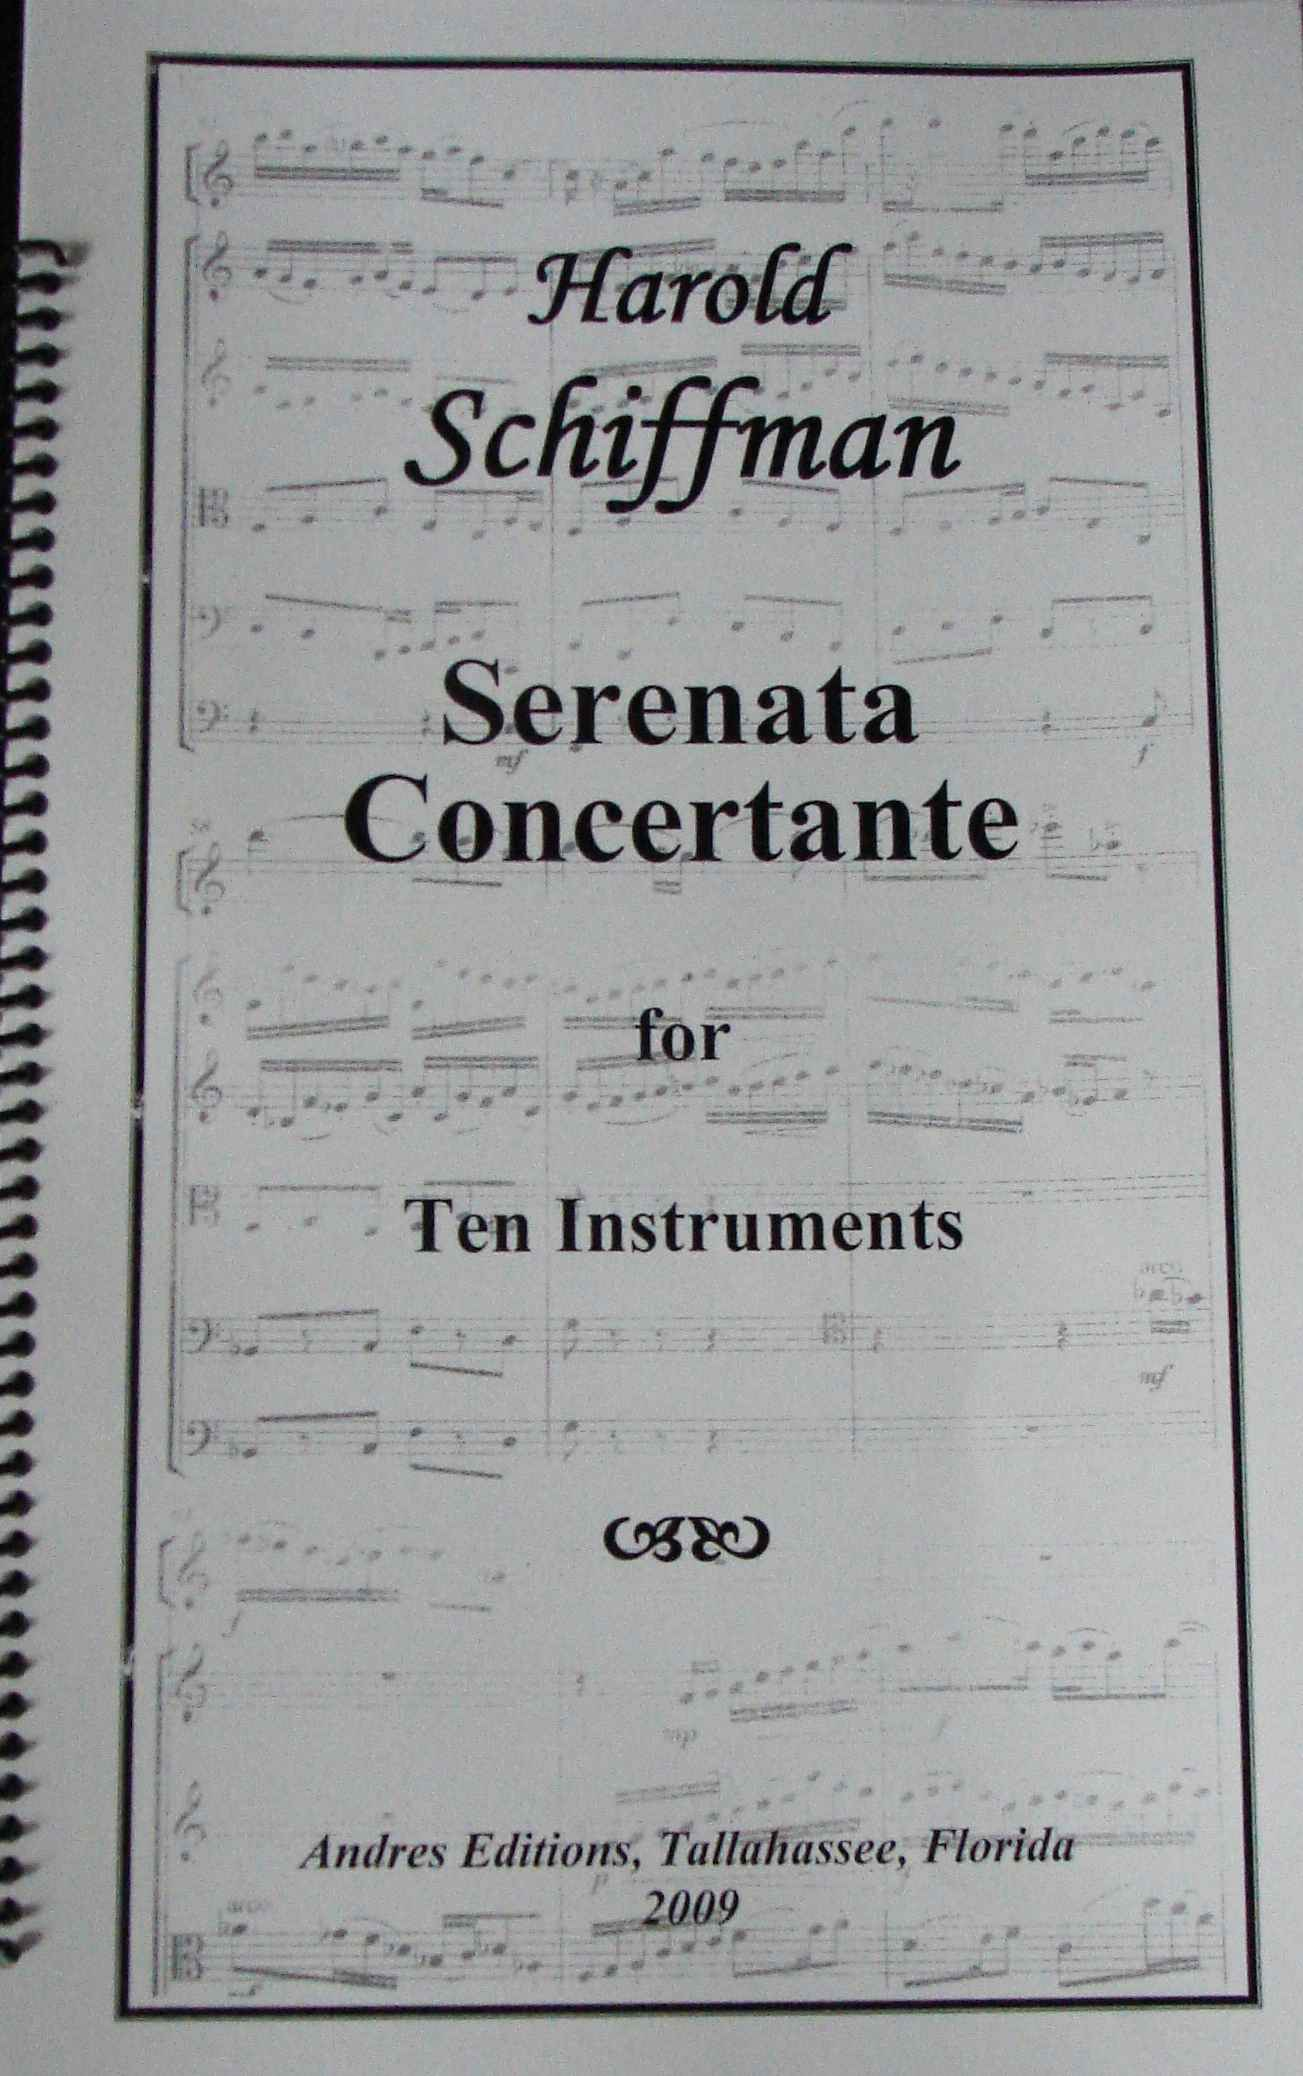 Photo of the Serenata Concertante (2009) score cover